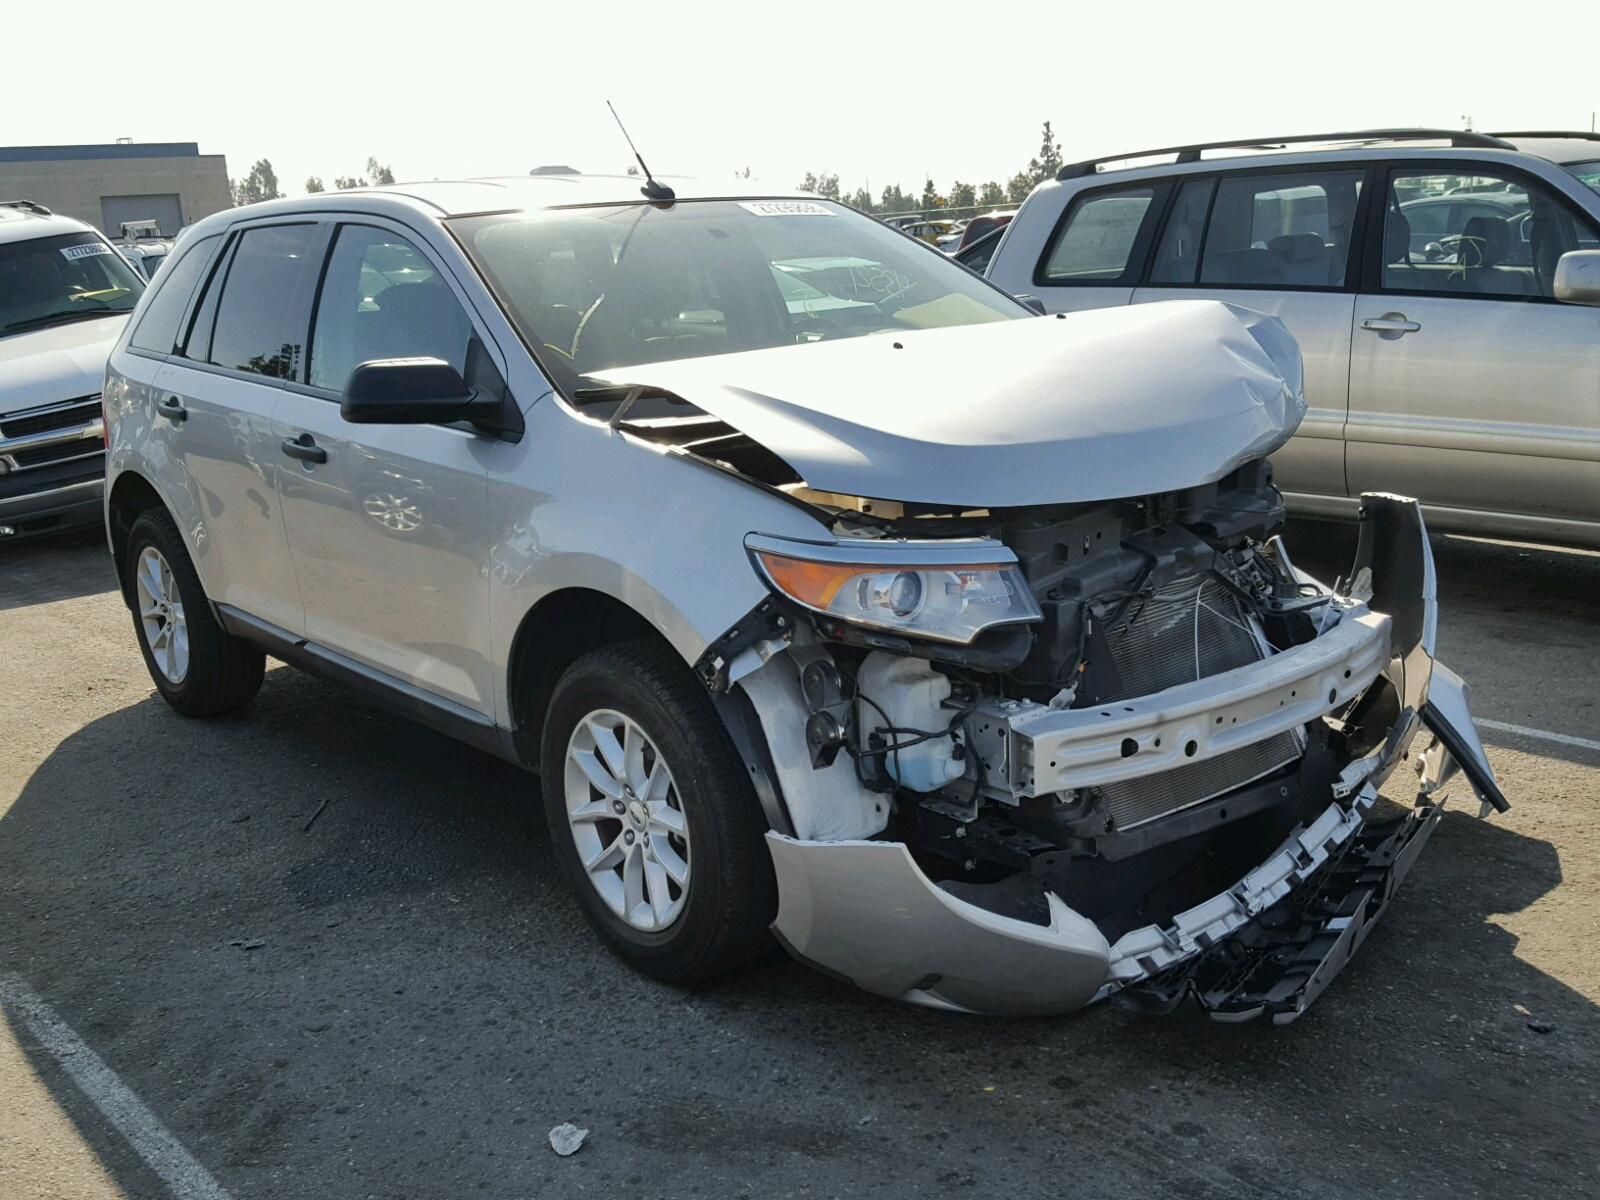 Auto Auction Ended On Vin 1ftpw145x4kd35916 2004 Ford F150 In Co F 150 Sport 2014 Edge Se 35l